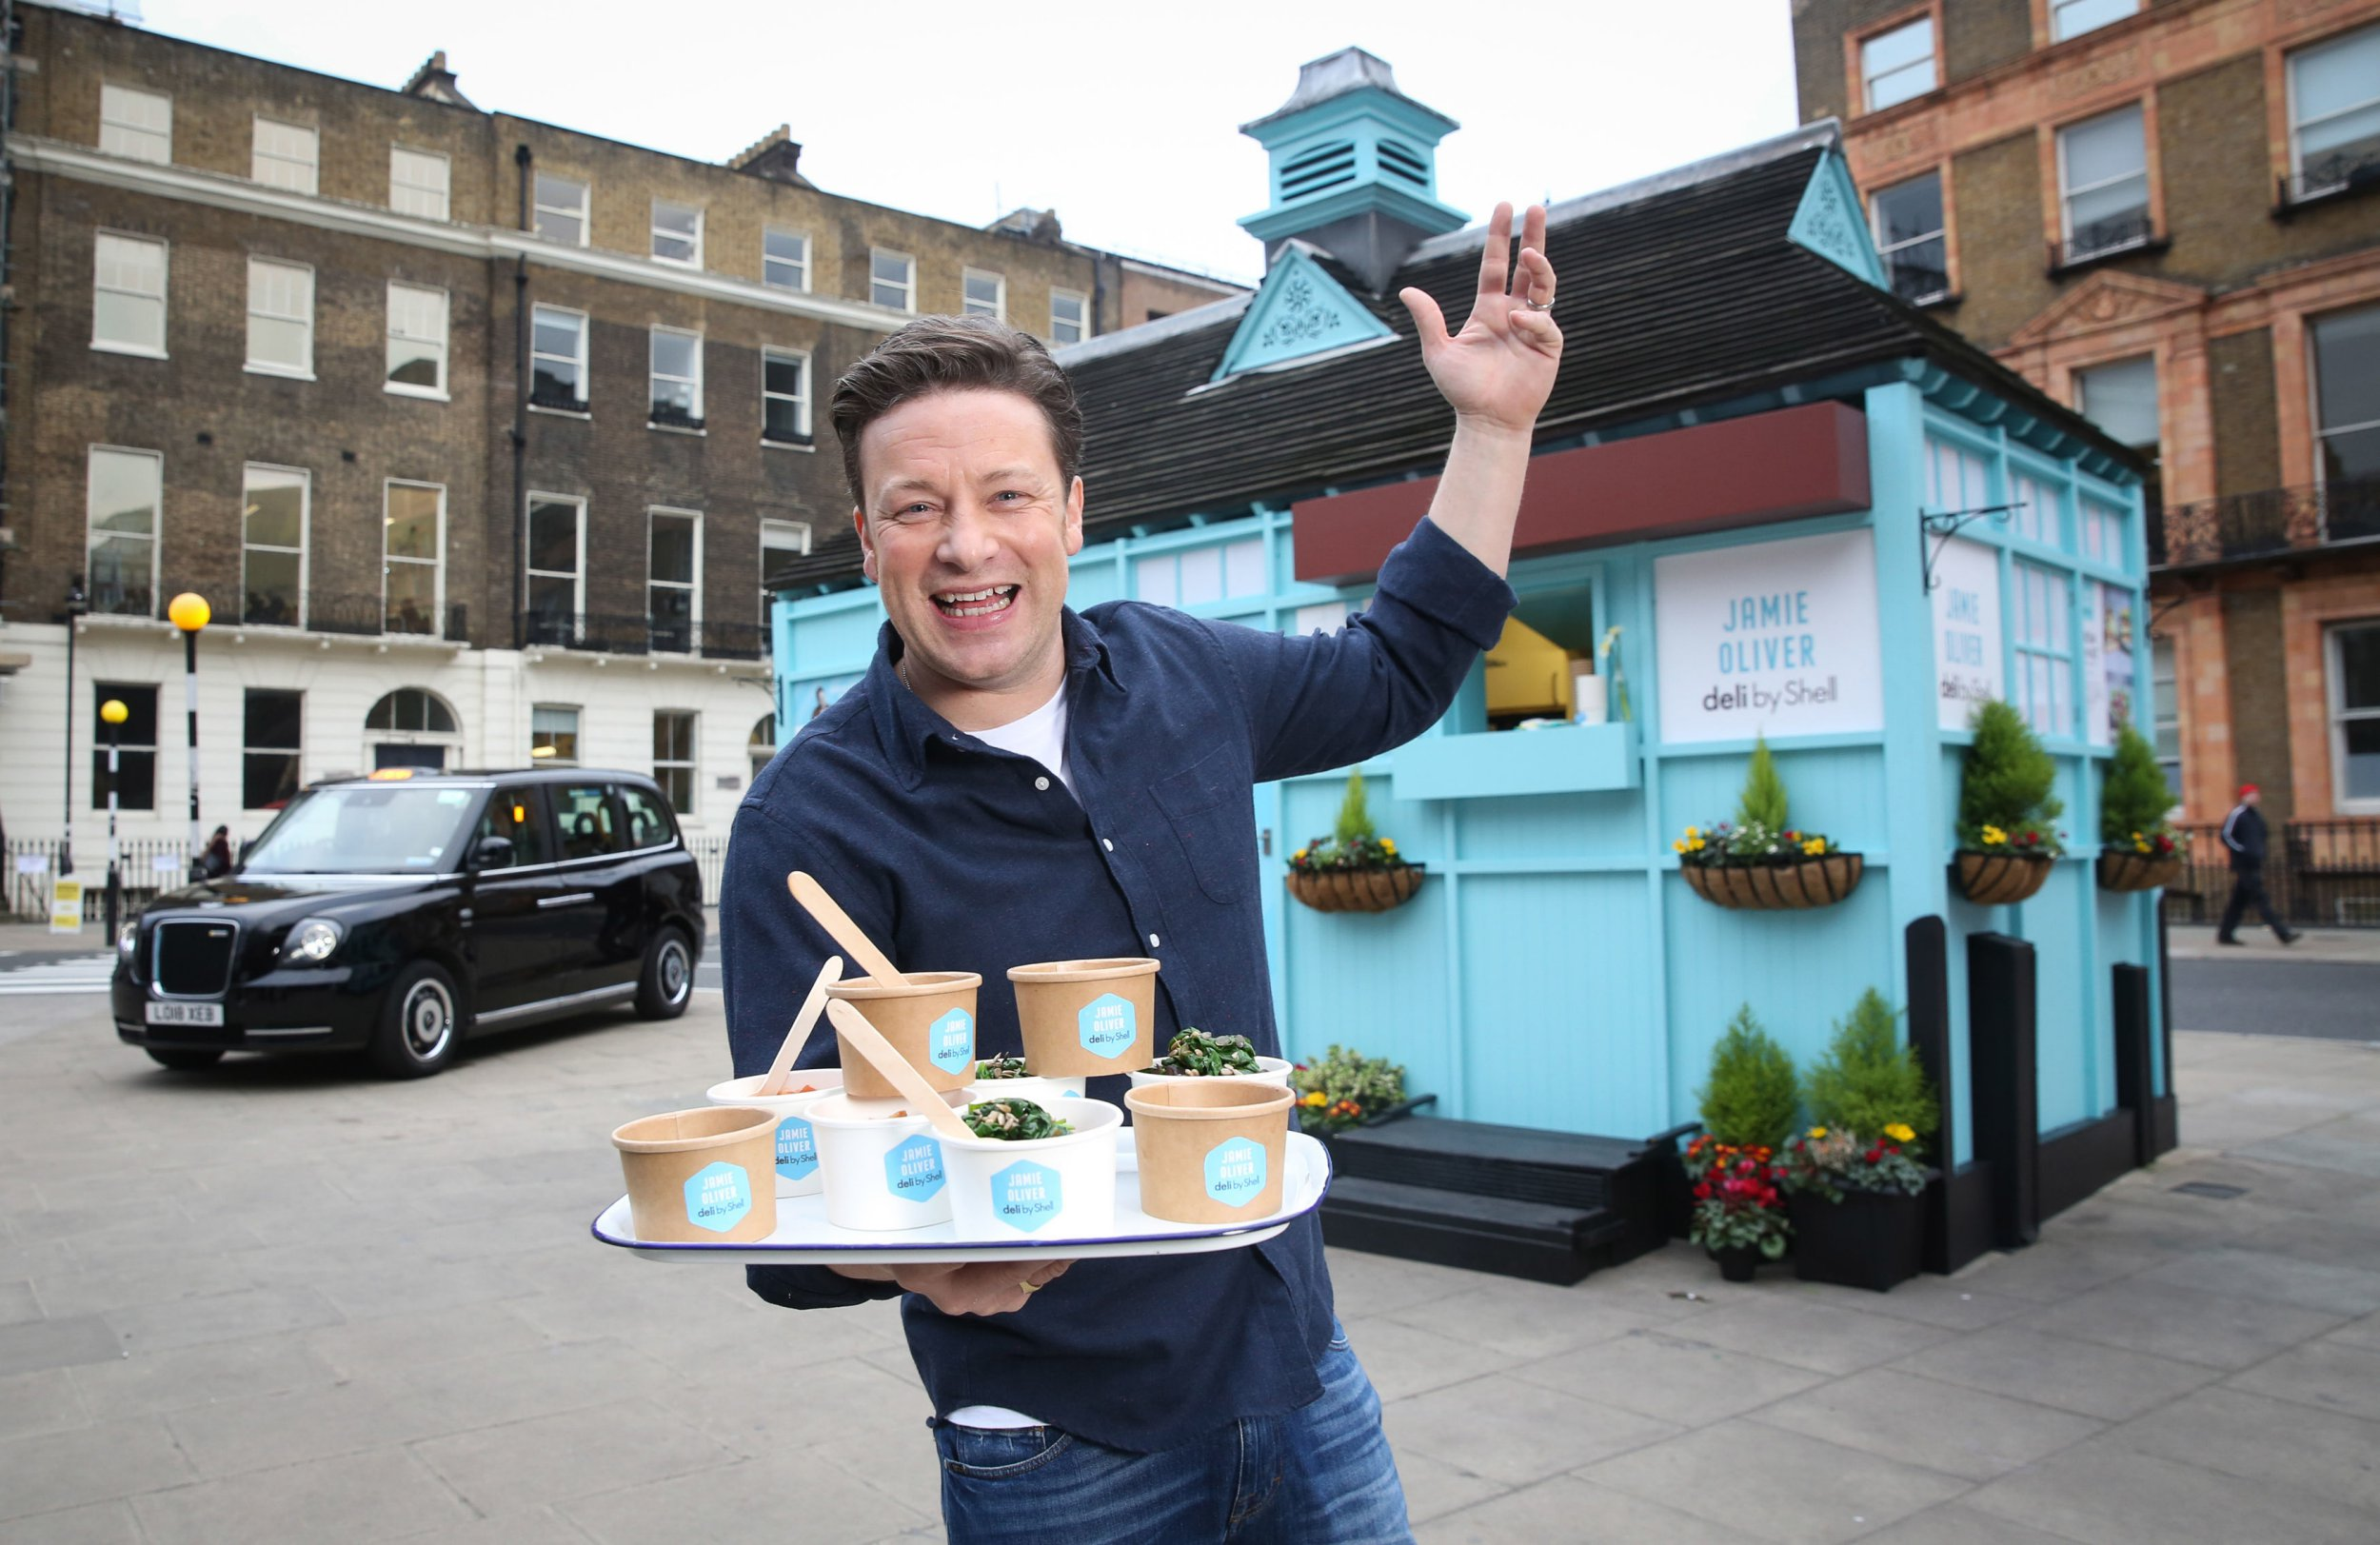 EDITORIAL USE ONLY Jamie Oliver hands out food at his bitesize pop-up cafe at a traditional cabmen's shelter in Russell Square, London, to announce the launch of Jamie Oliver deli by Shell. PRESS ASSOCIATION Photo. Picture date: Tuesday January 15, 2019. The new menu will include such snacks as Superfood Red Fruit Porridge Hot Pot, Egg, Bean & Bacon Hot Pot, Mediterranean roasted veggie & ricotta wrap, a smoked cheese and slaw spicy chipotle chicken sandwich as well as a new kids' meal box which will feature a sandwich, fruit, vegetables and a dip. The 80 new products will be available at over 500 of Shell's service stations across the UK from January 31st. Photo credit should read: Matt Alexander/PA Wire